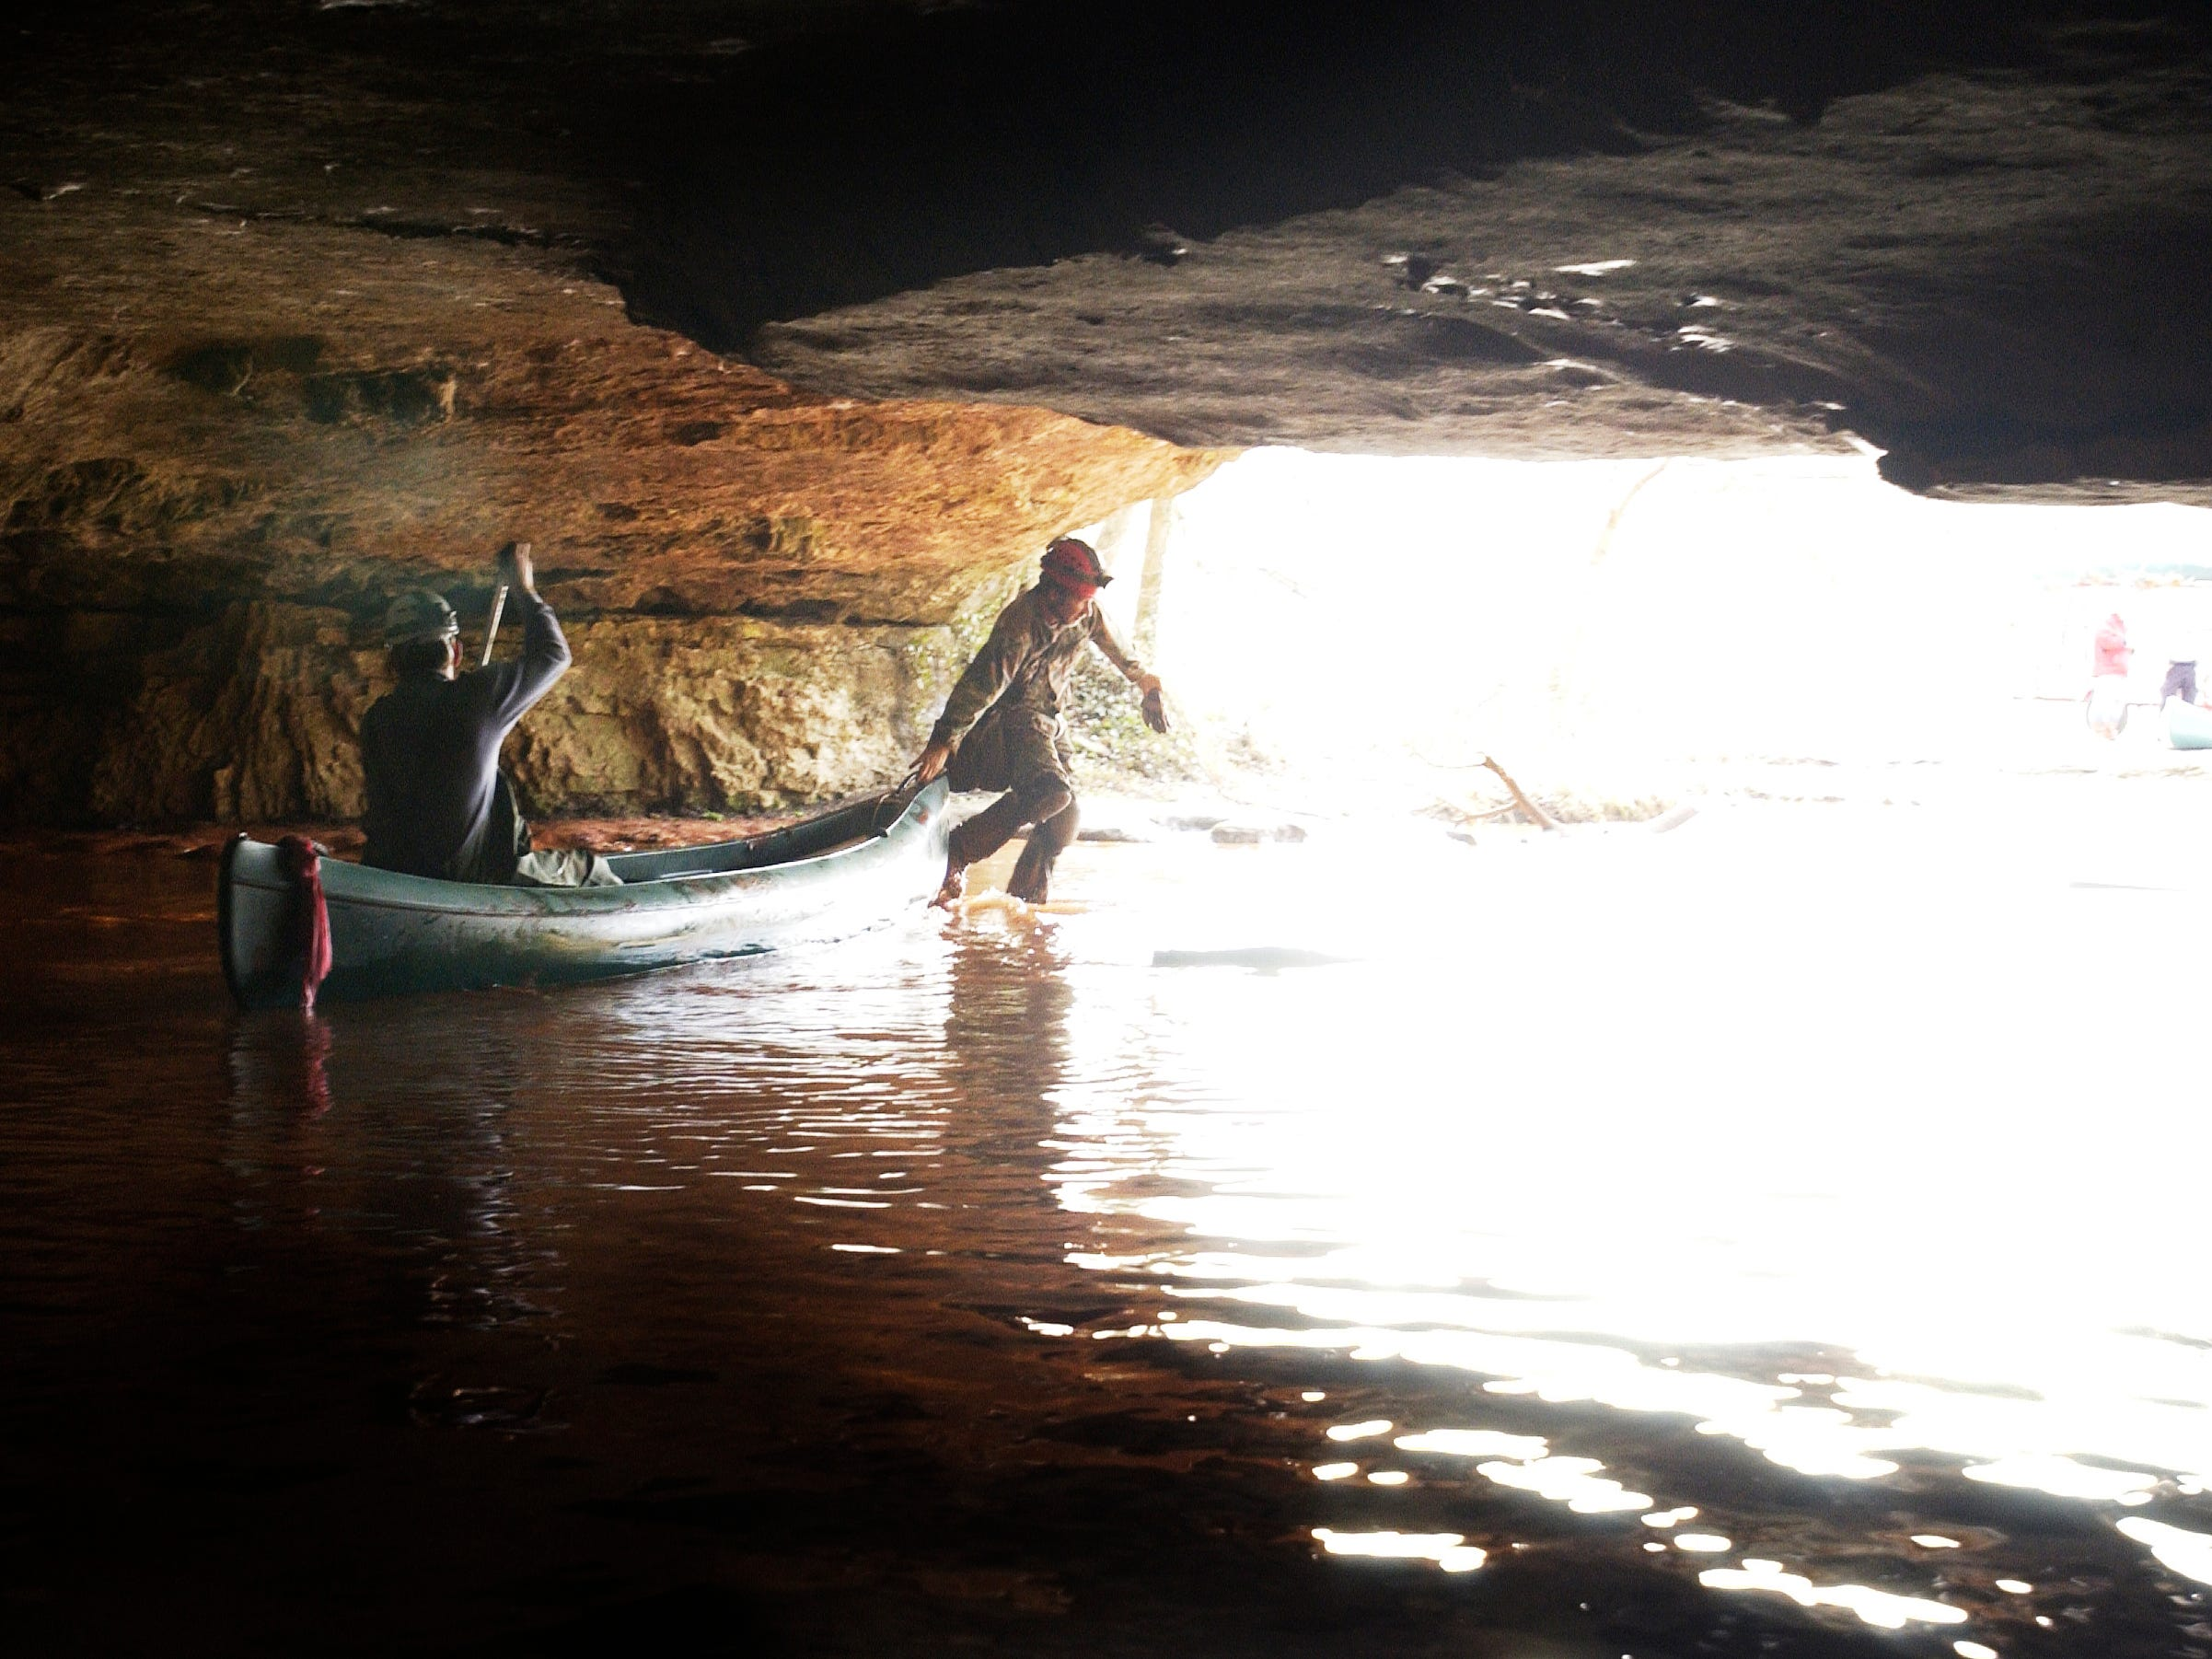 MSU geologist Dave Gaunt, right, pulls his canoe out of the mouth of the Sequiota Park Cave. Jess Heugel/ News-Leader.